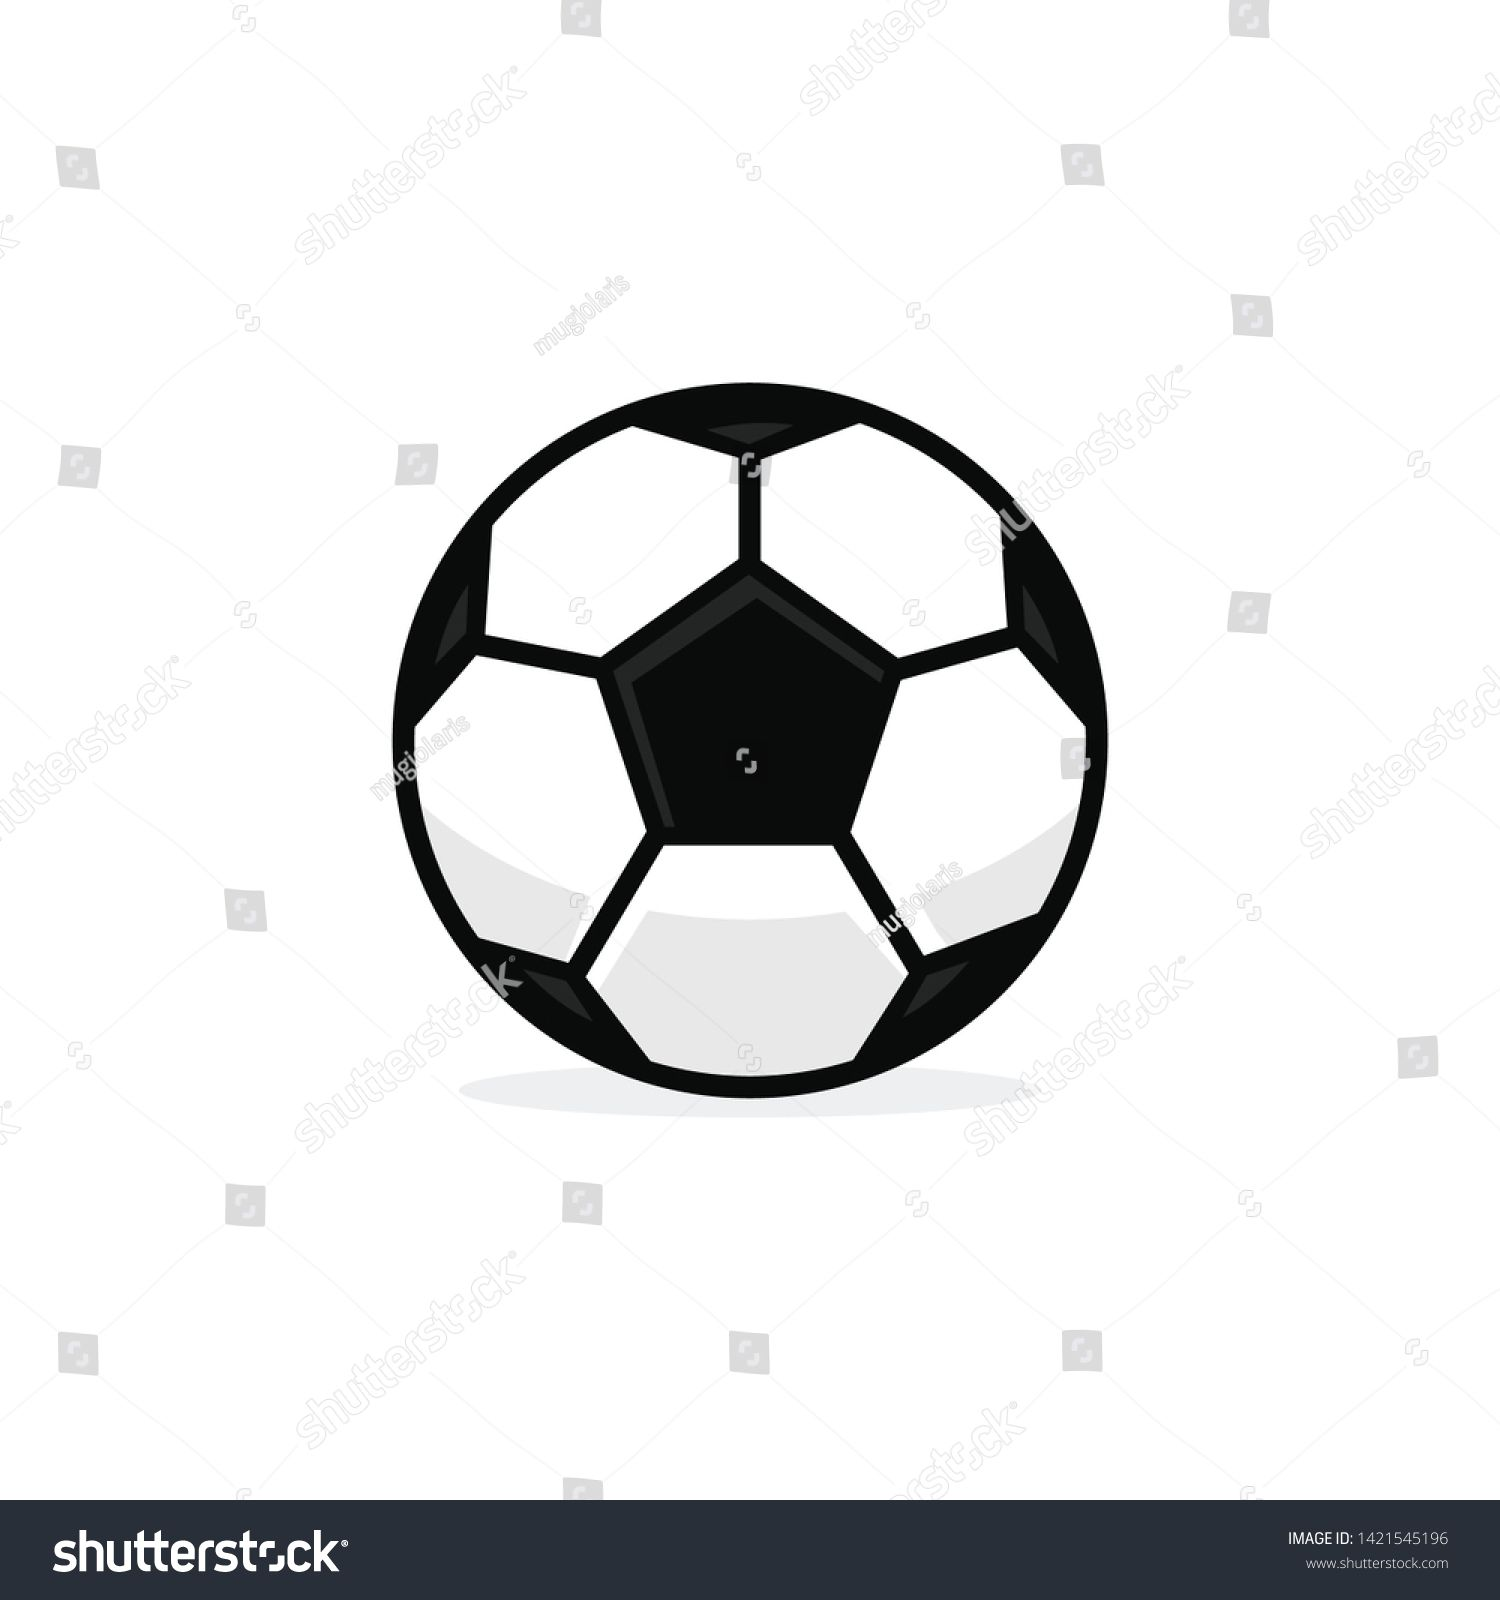 Football Ball Soccer Ball Vector Template Illustration Sponsored Sponsored Soccer Ball Football Illustrat Soccer Ball Football Ball Football Illustration